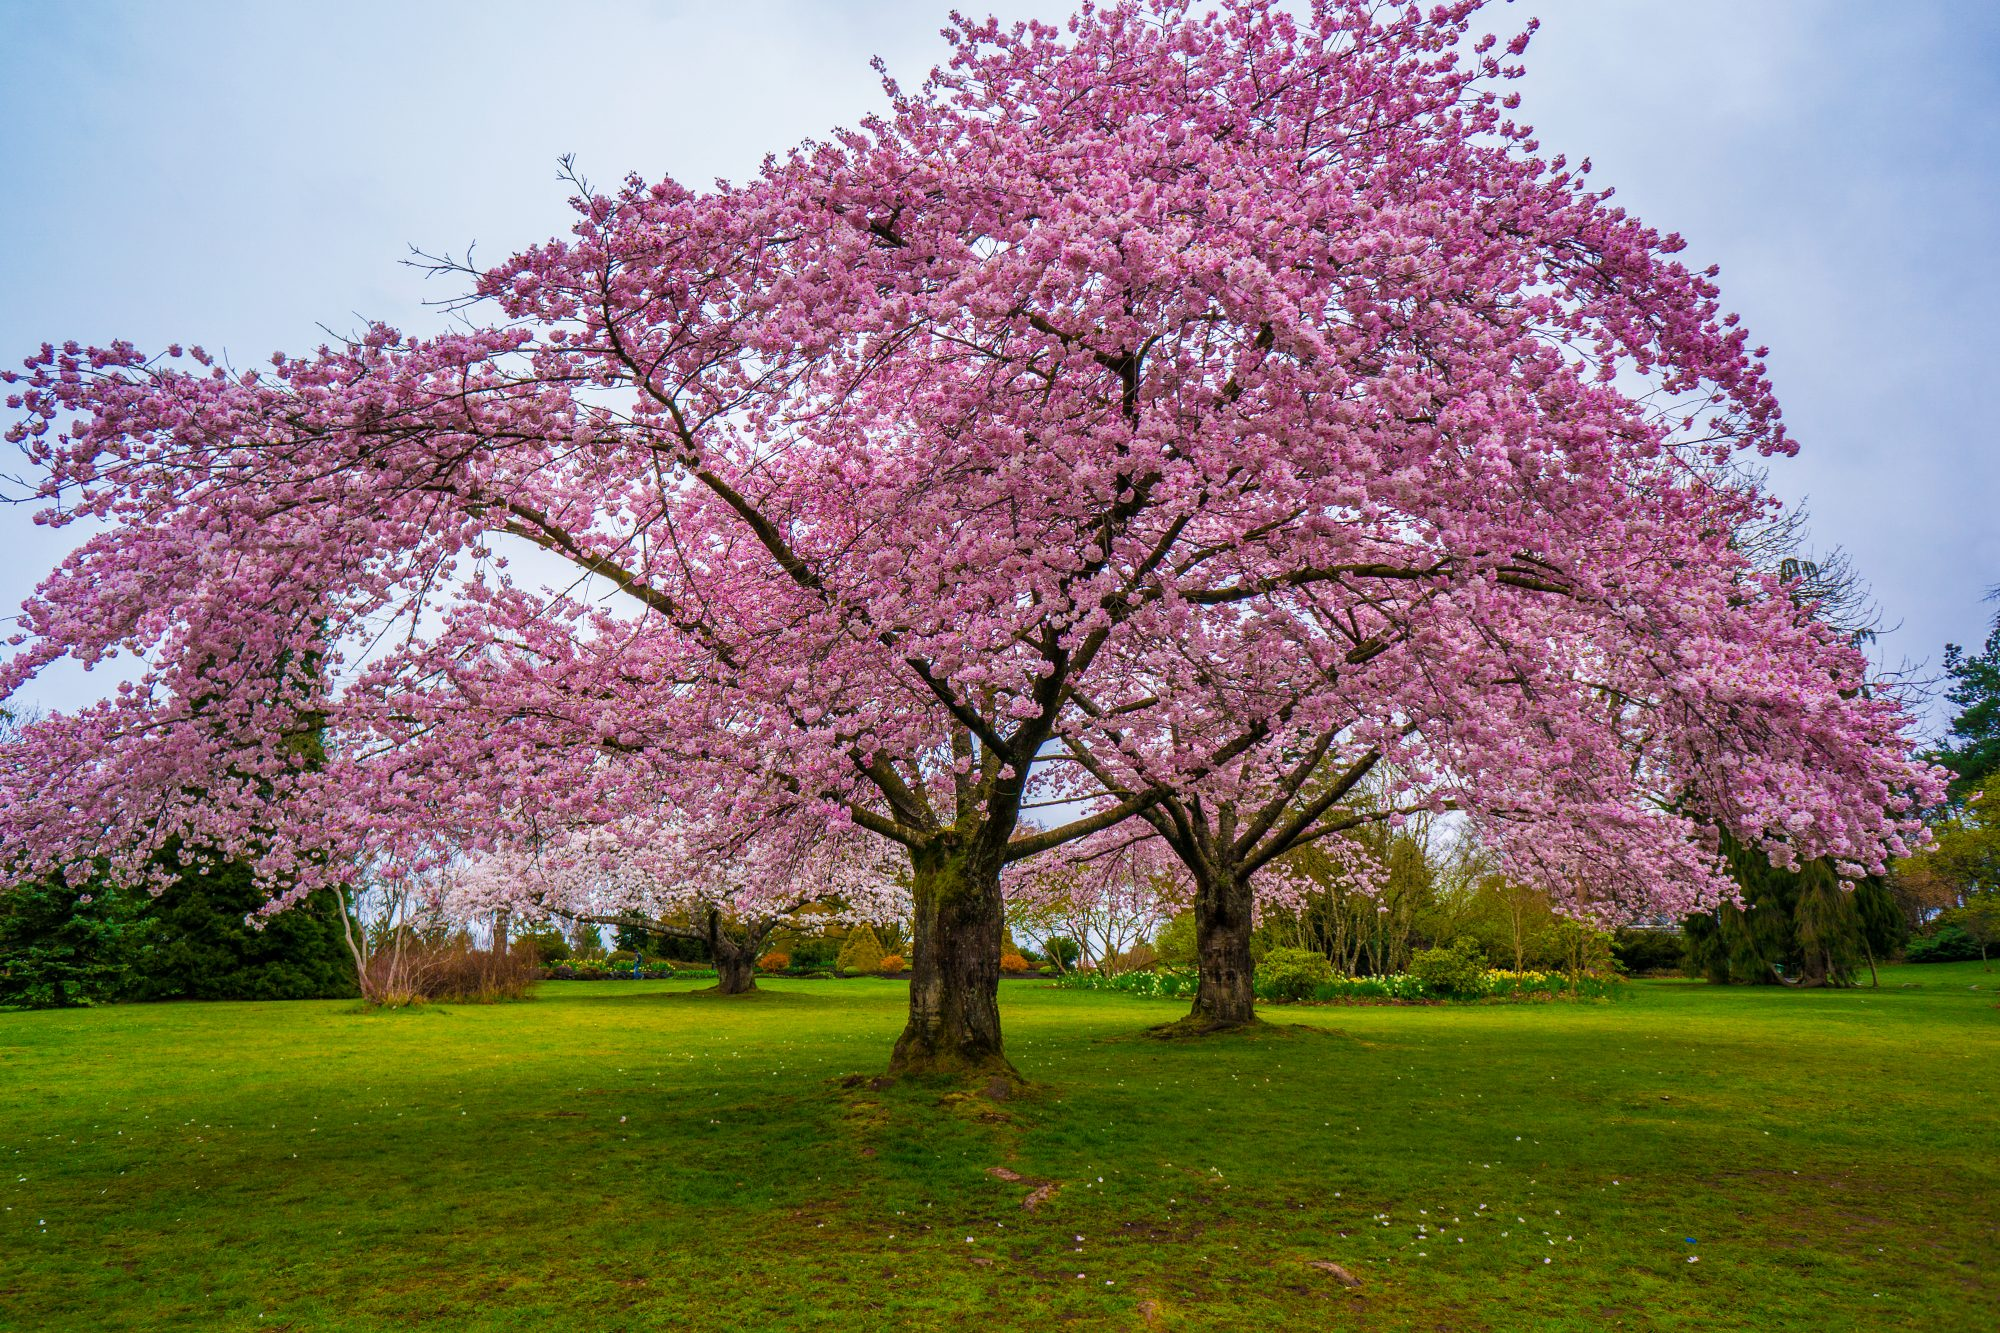 You Can Buy Cherry Blossom Trees for Just $39 at Home ...